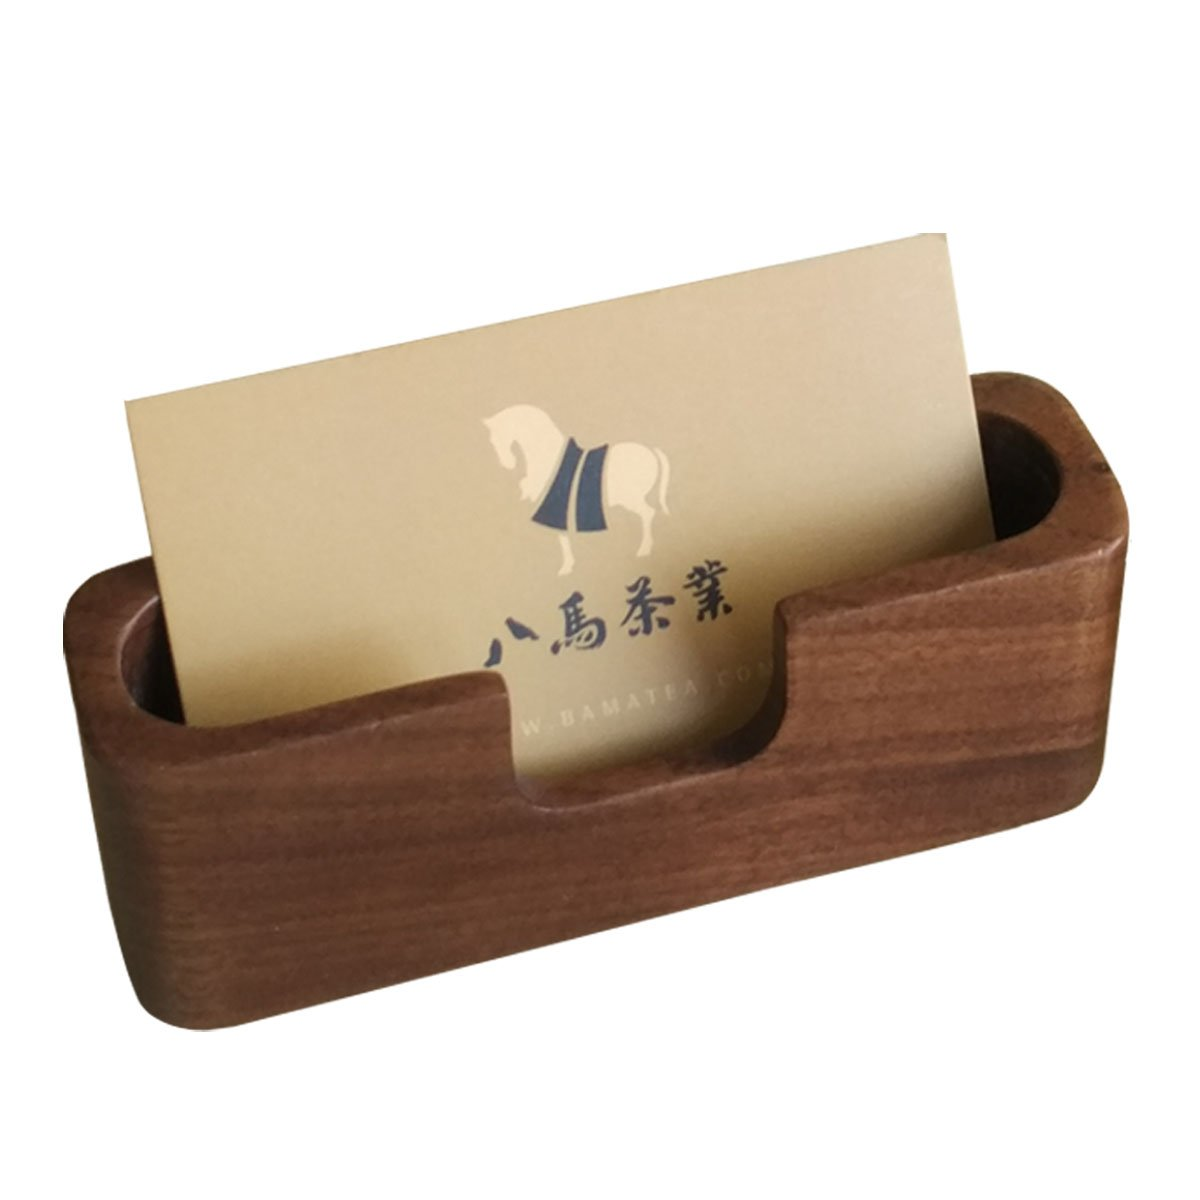 Wood Business Card Display Holder, Professional Brown Walnut Cards Case for Desk Desktop Single Compartment Wooden Name Card Stand for Tables Organizer Index Card Filing Topspeeder